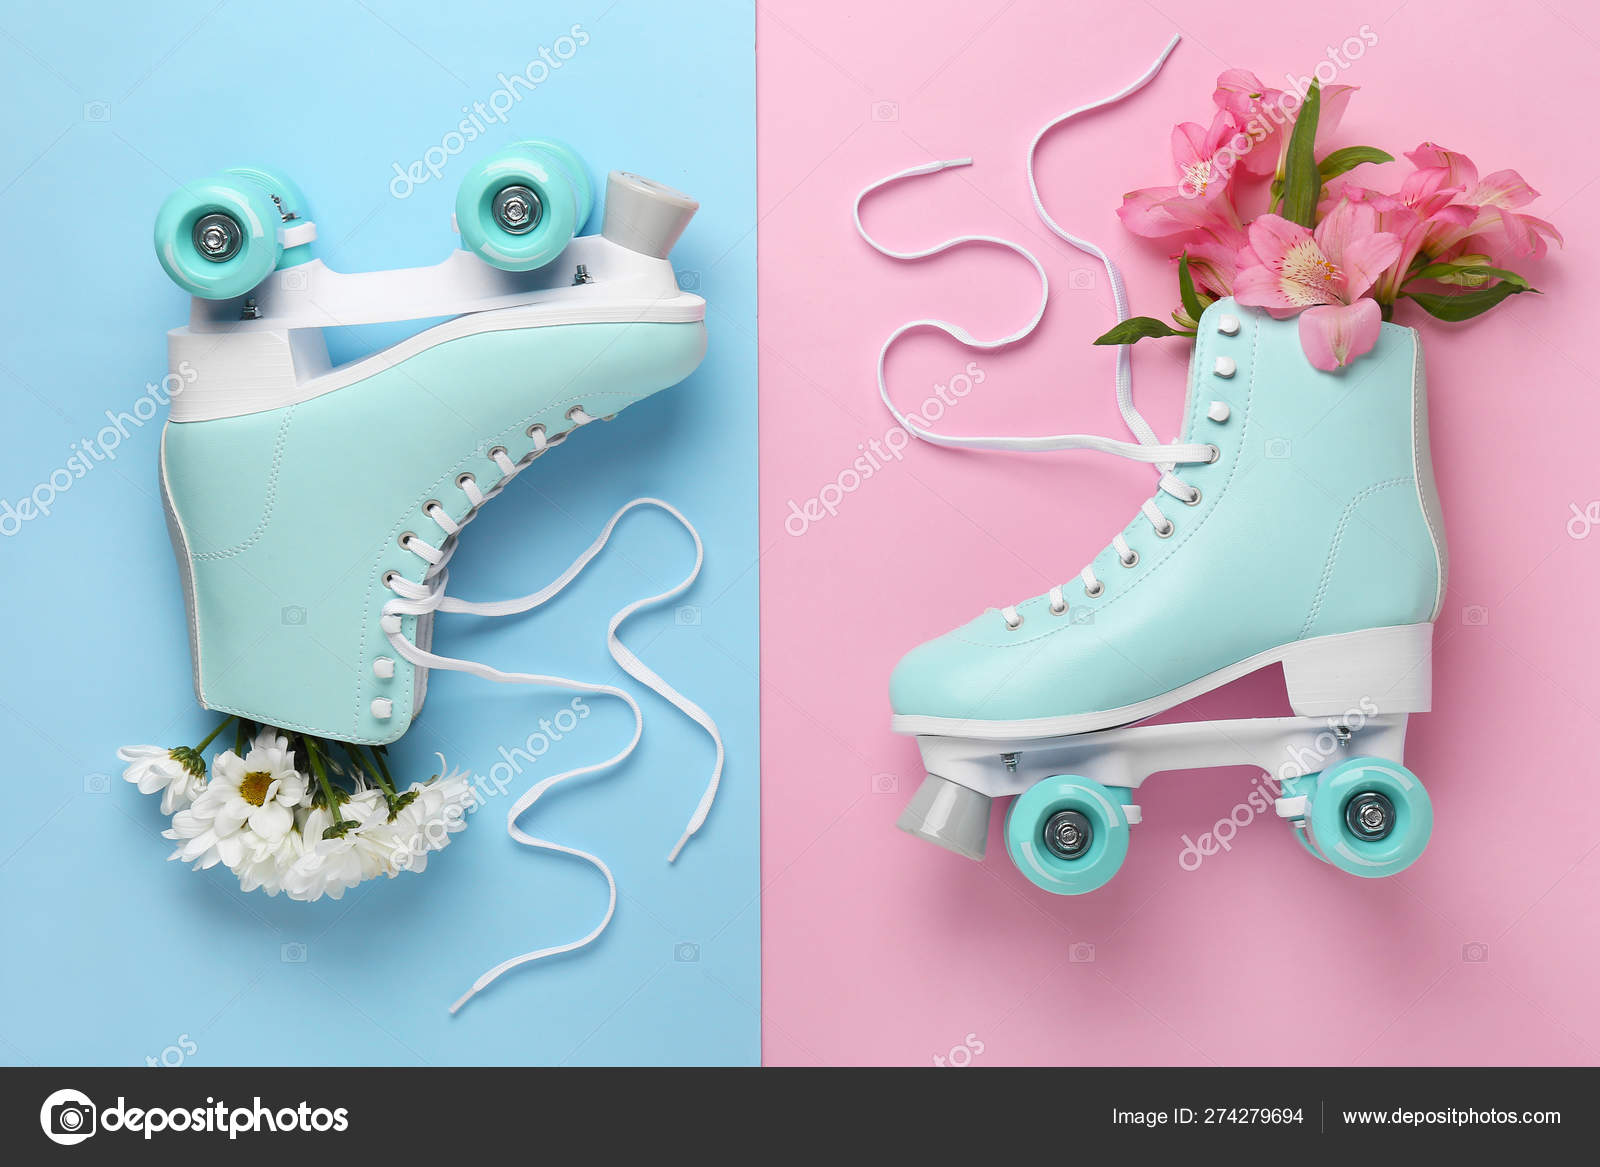 Vintage Roller Skates With Flowers On Color Background Stock Photo C Serezniy 274279694